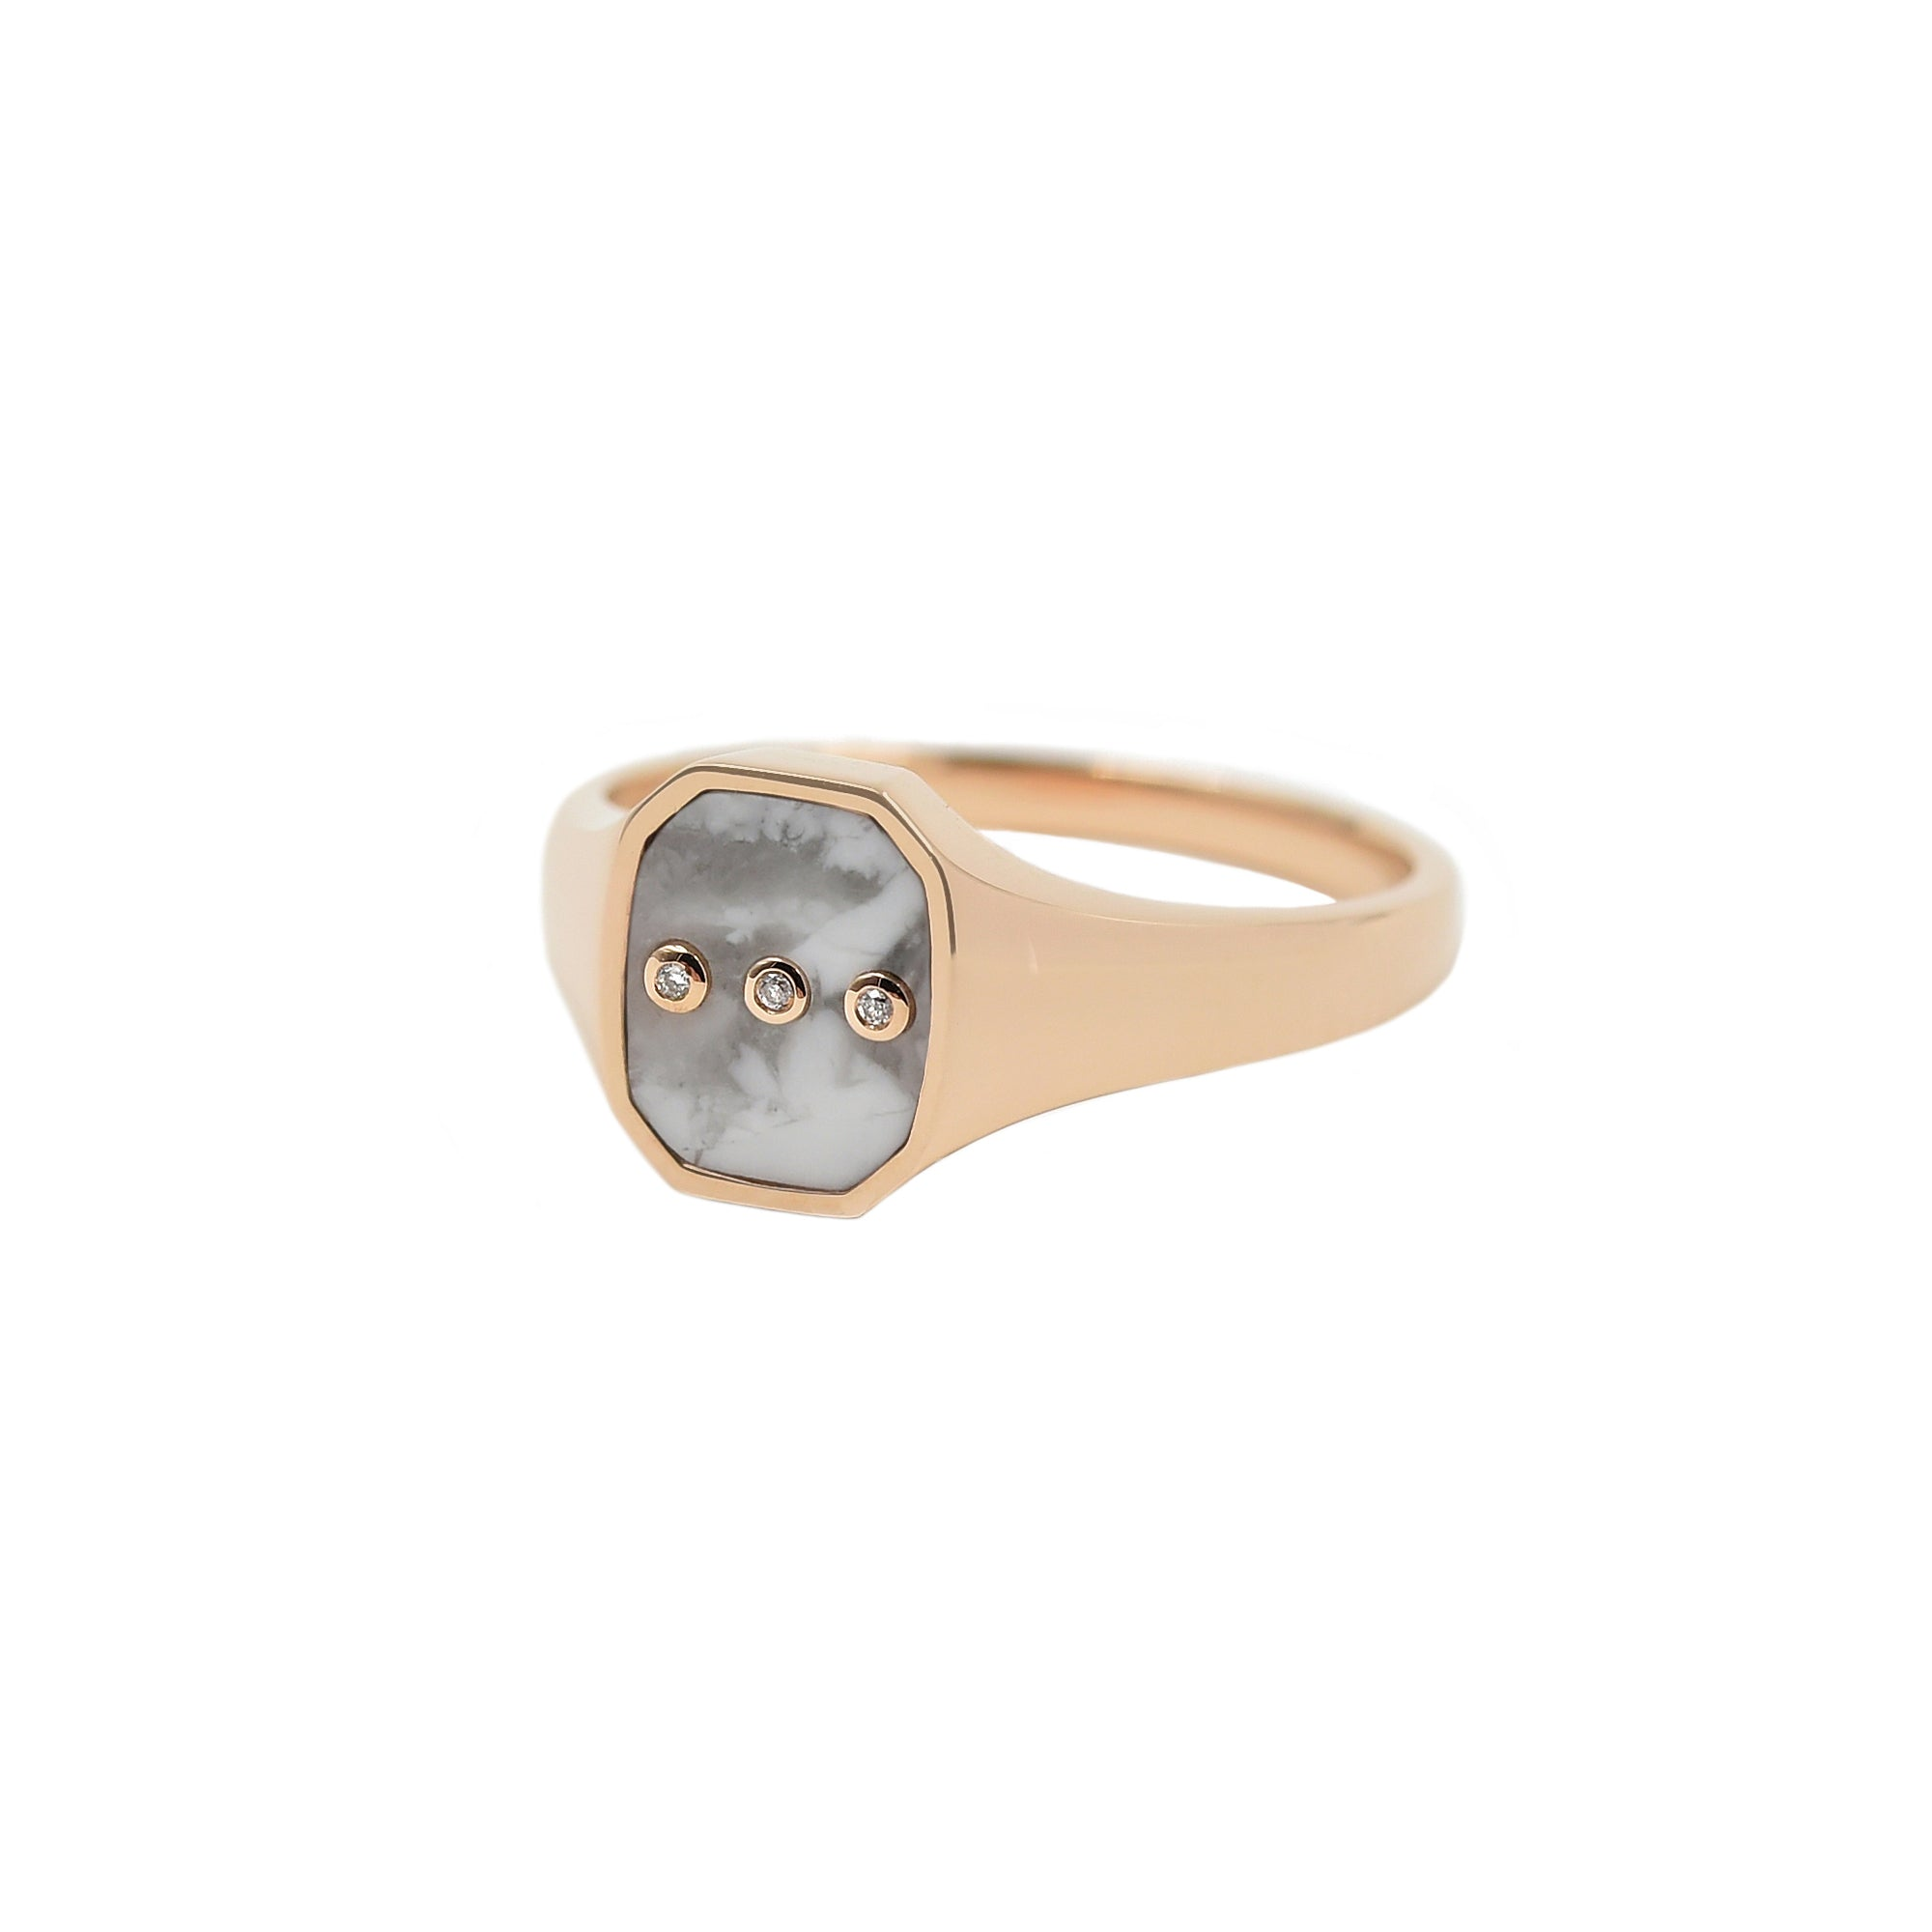 Howlite Melody Signet Ring - Bondeye - Ring | Broken English Jewelry